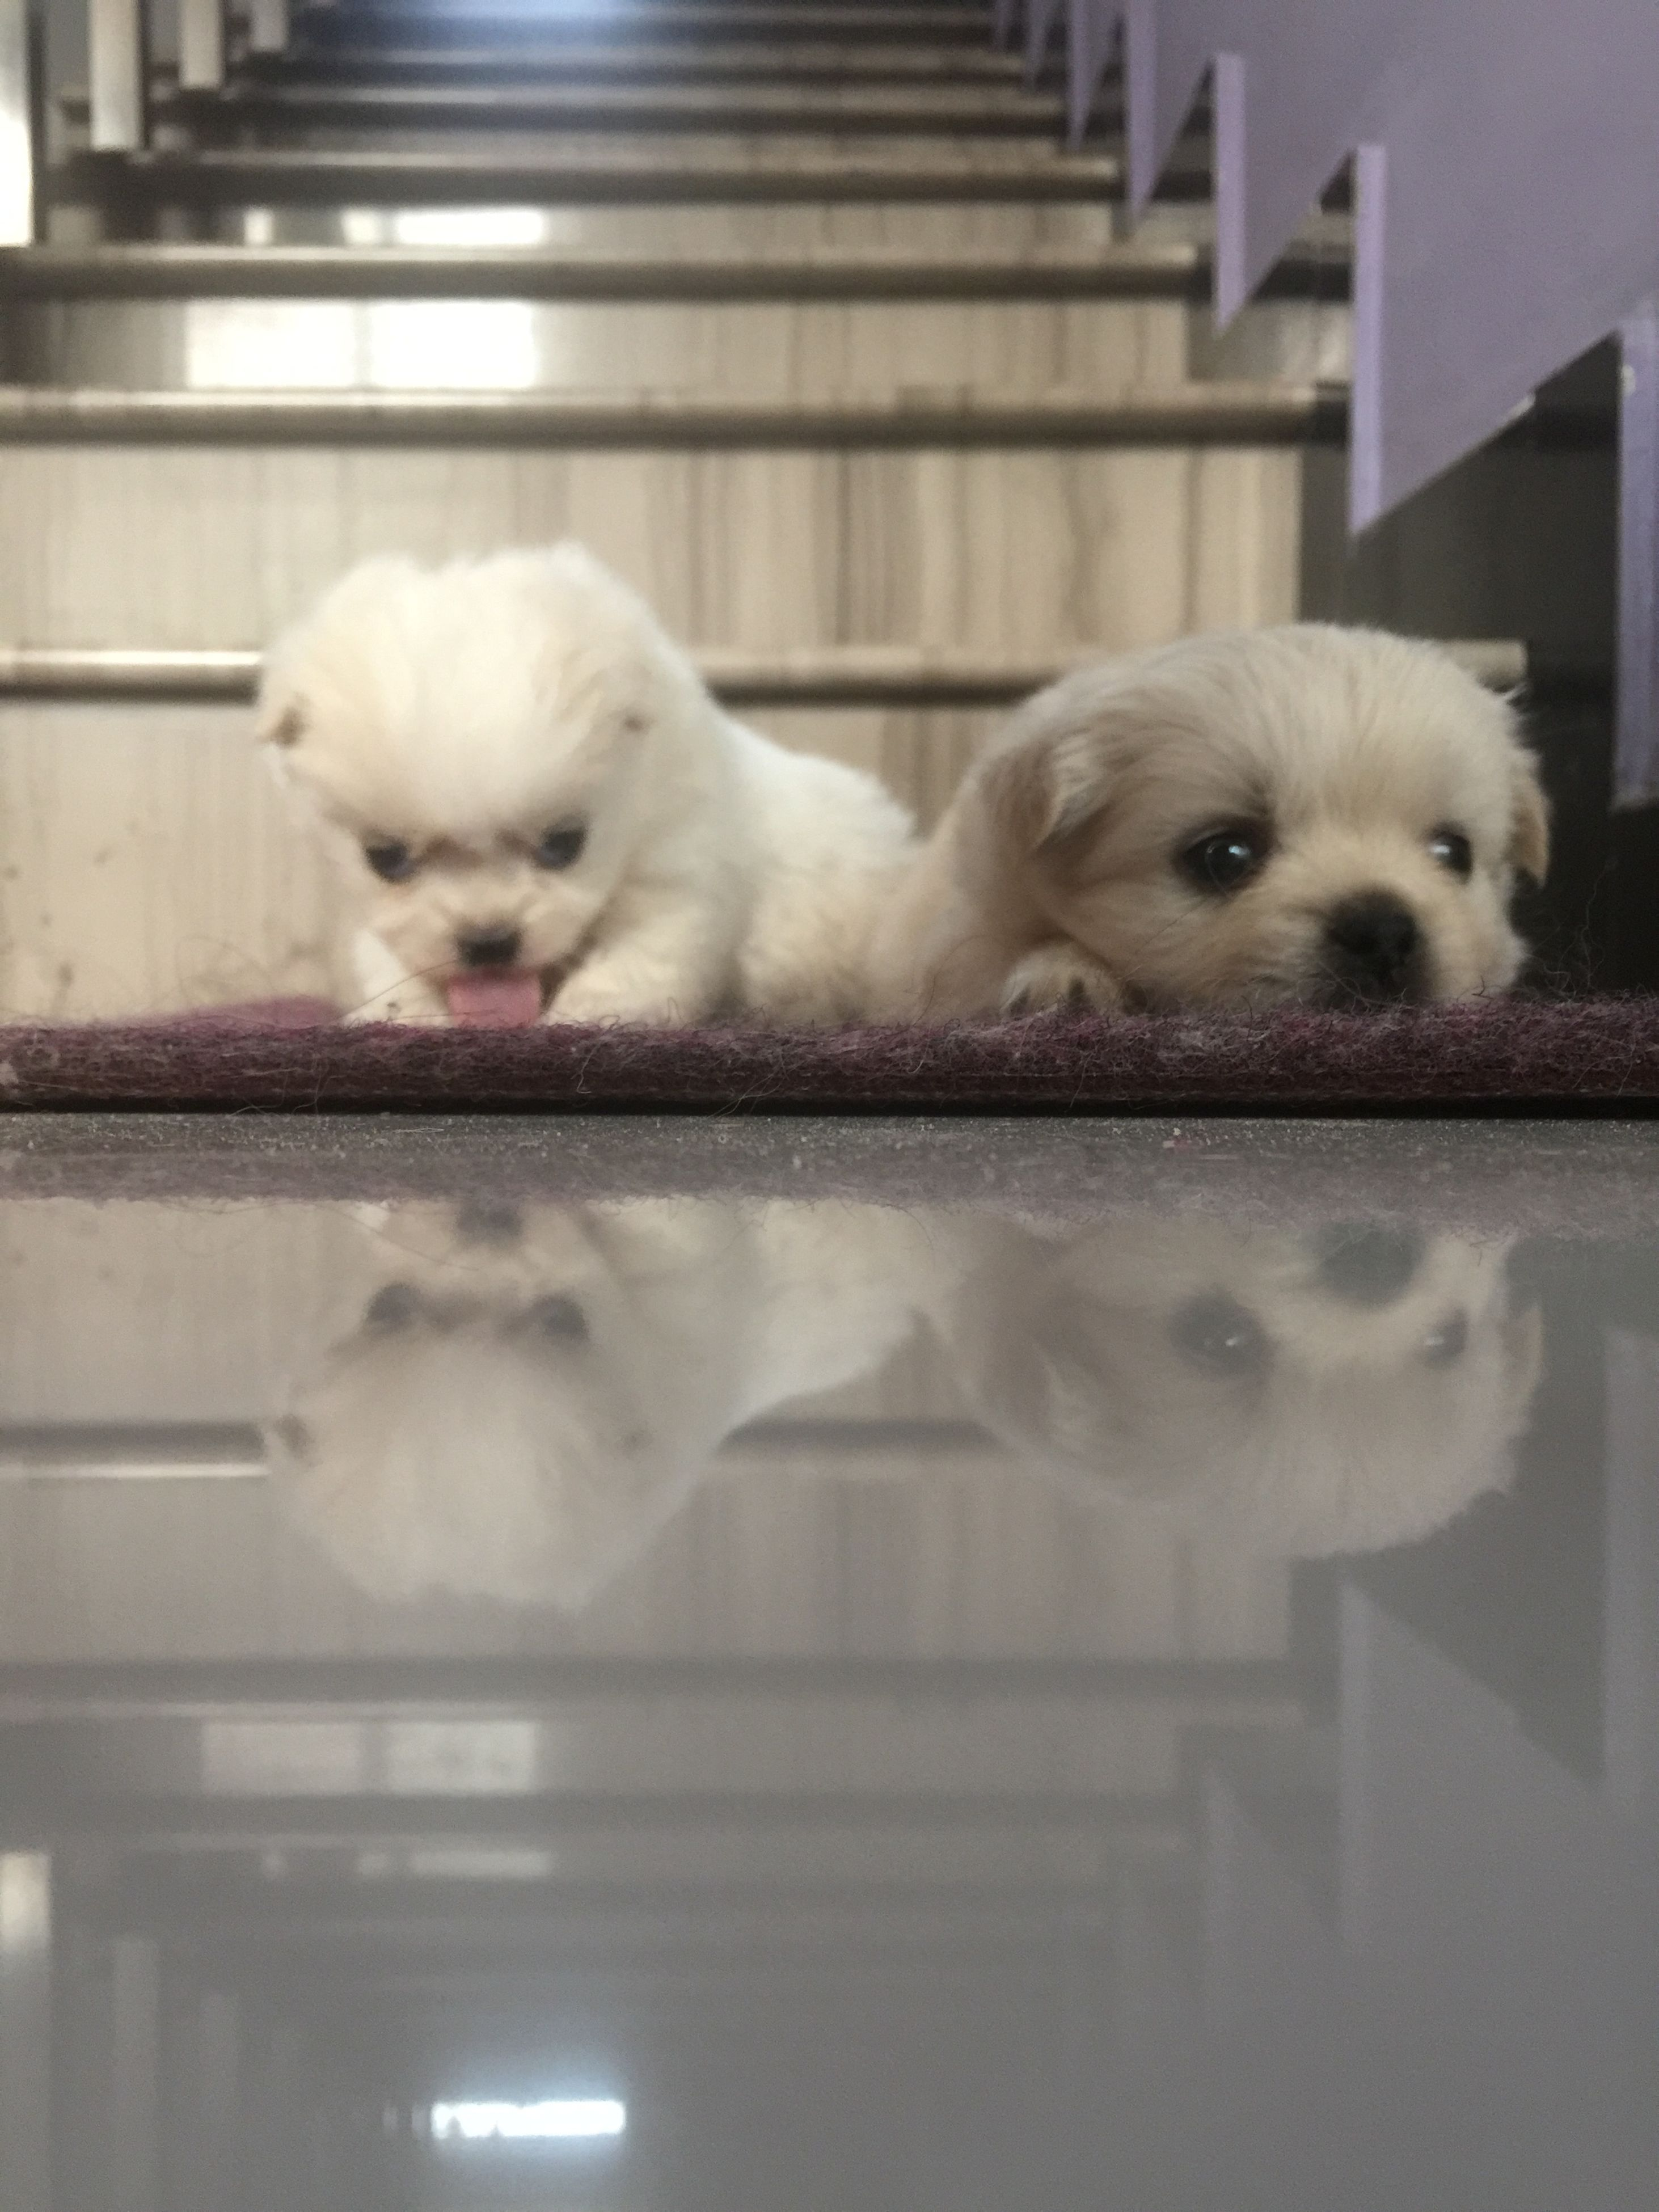 animal themes, domestic animals, pets, one animal, mammal, indoors, dog, cute, white color, two animals, close-up, animal hair, sitting, focus on foreground, togetherness, looking at camera, portrait, young animal, relaxation, front view